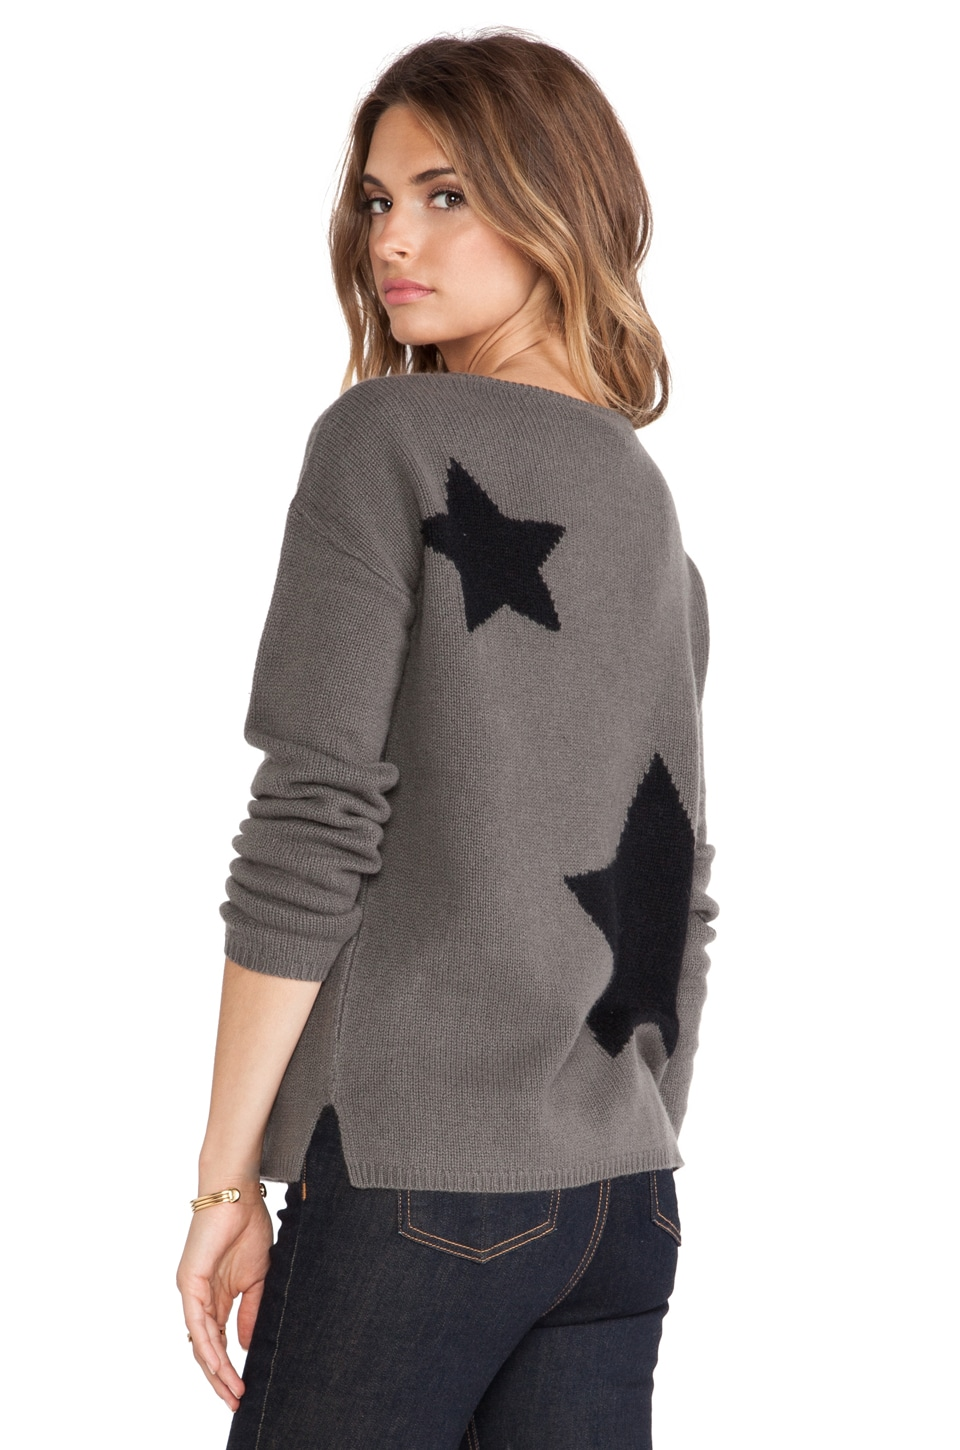 360CASHMERE Sky Sweater in Army & Black